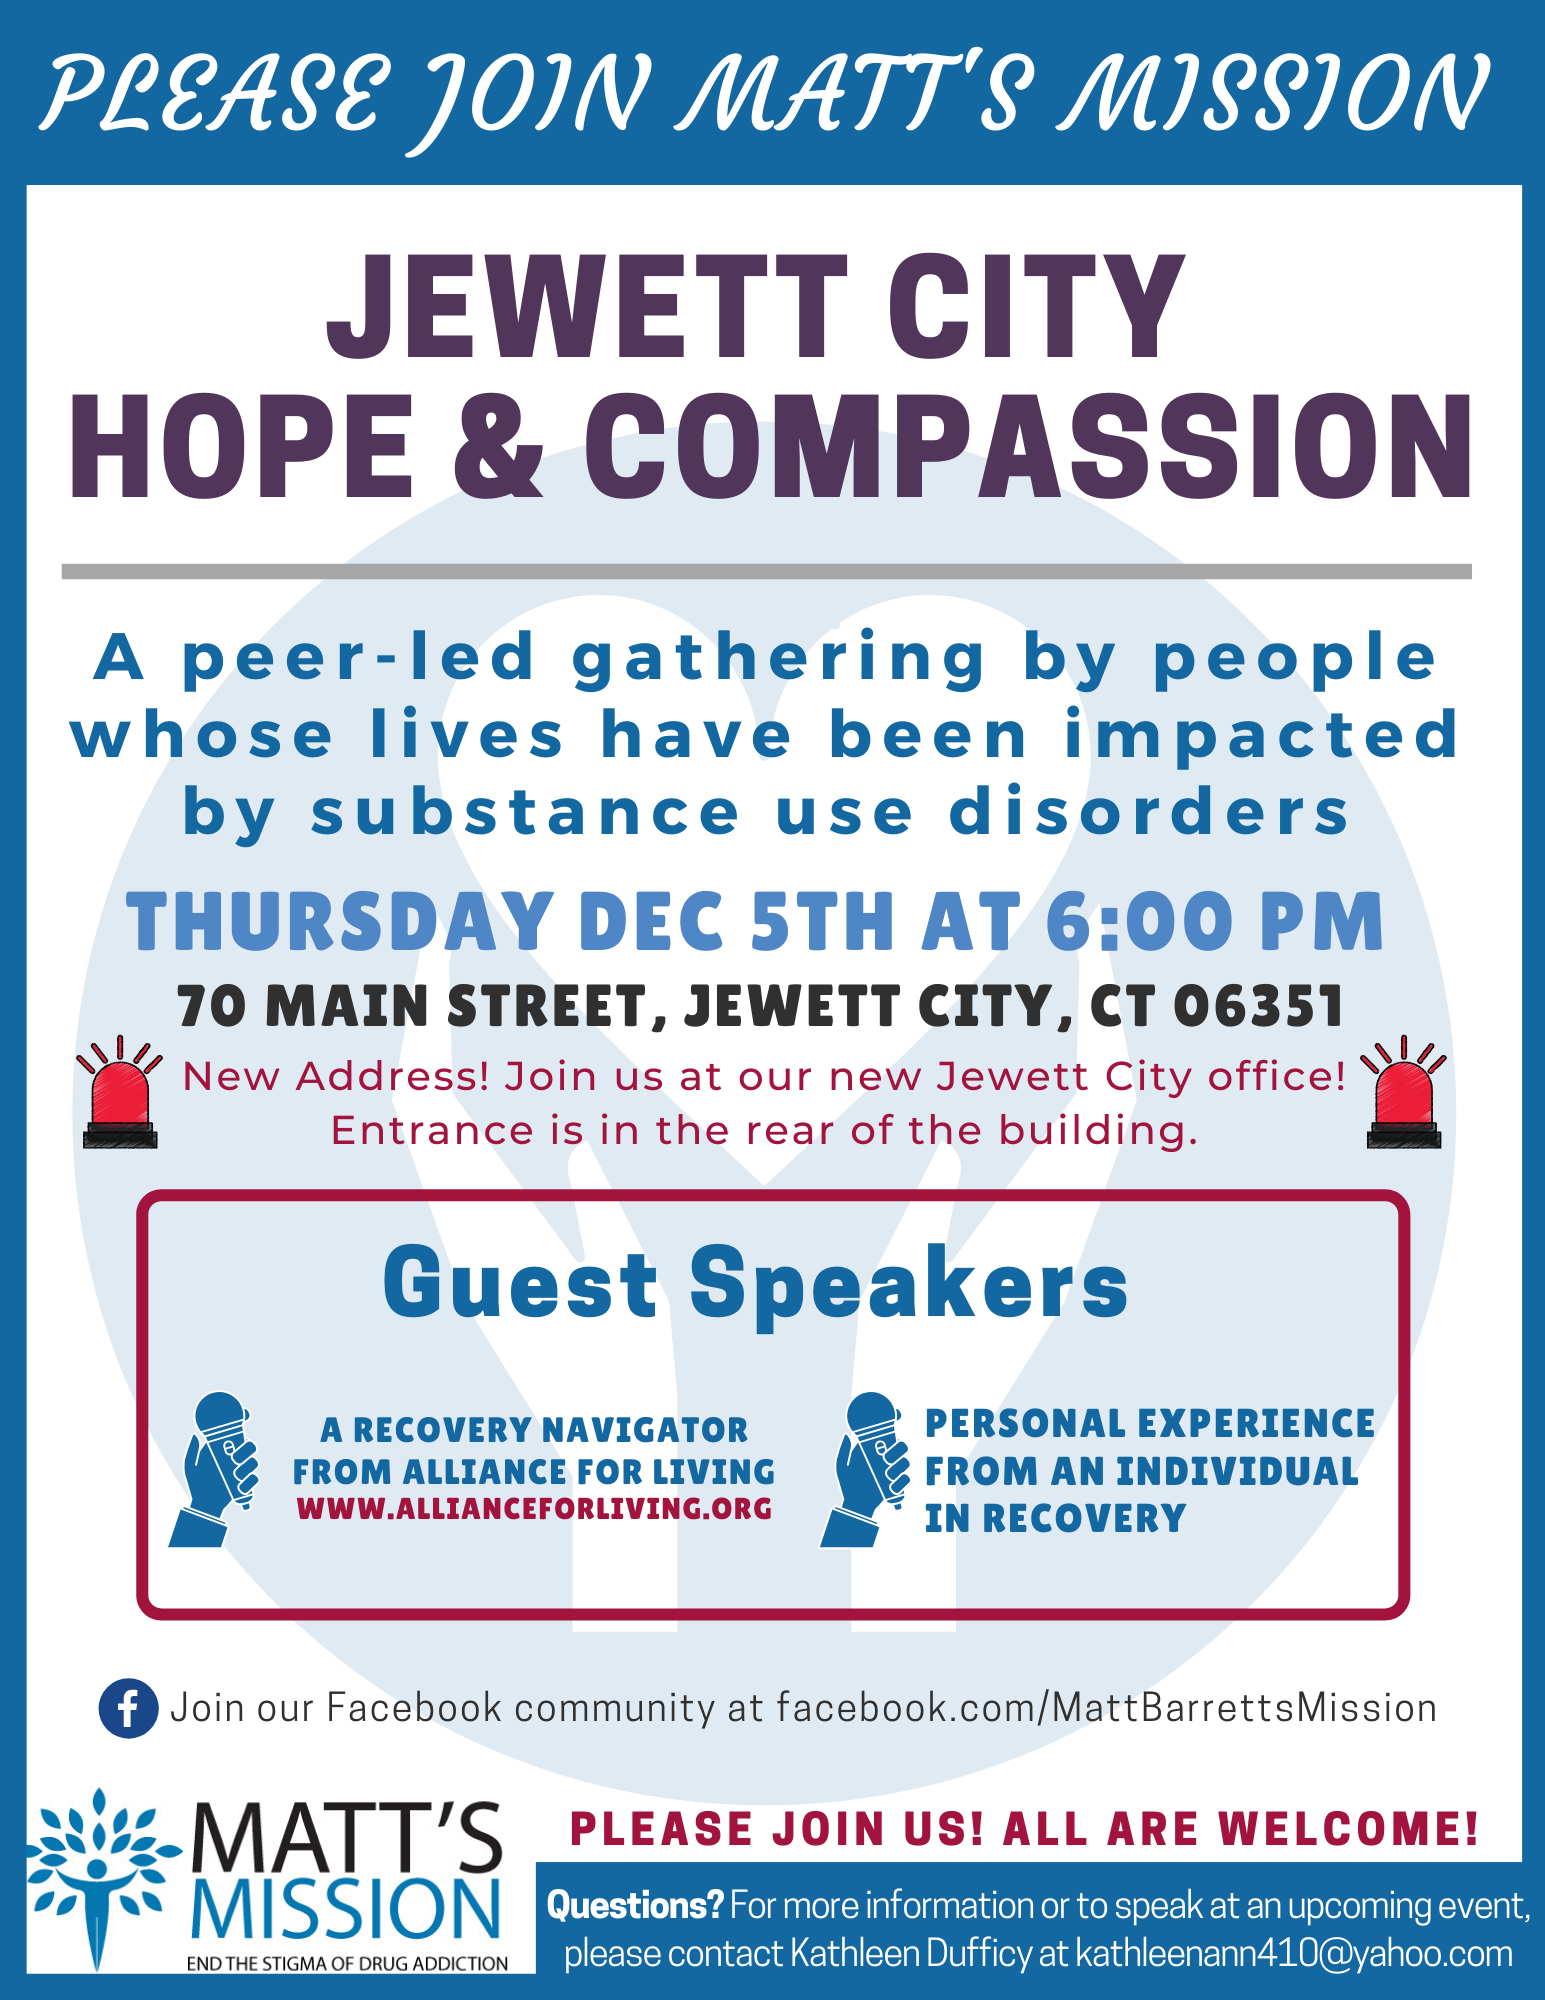 Join us for Jewett City Hope and Compassion on December 5th, 2019.